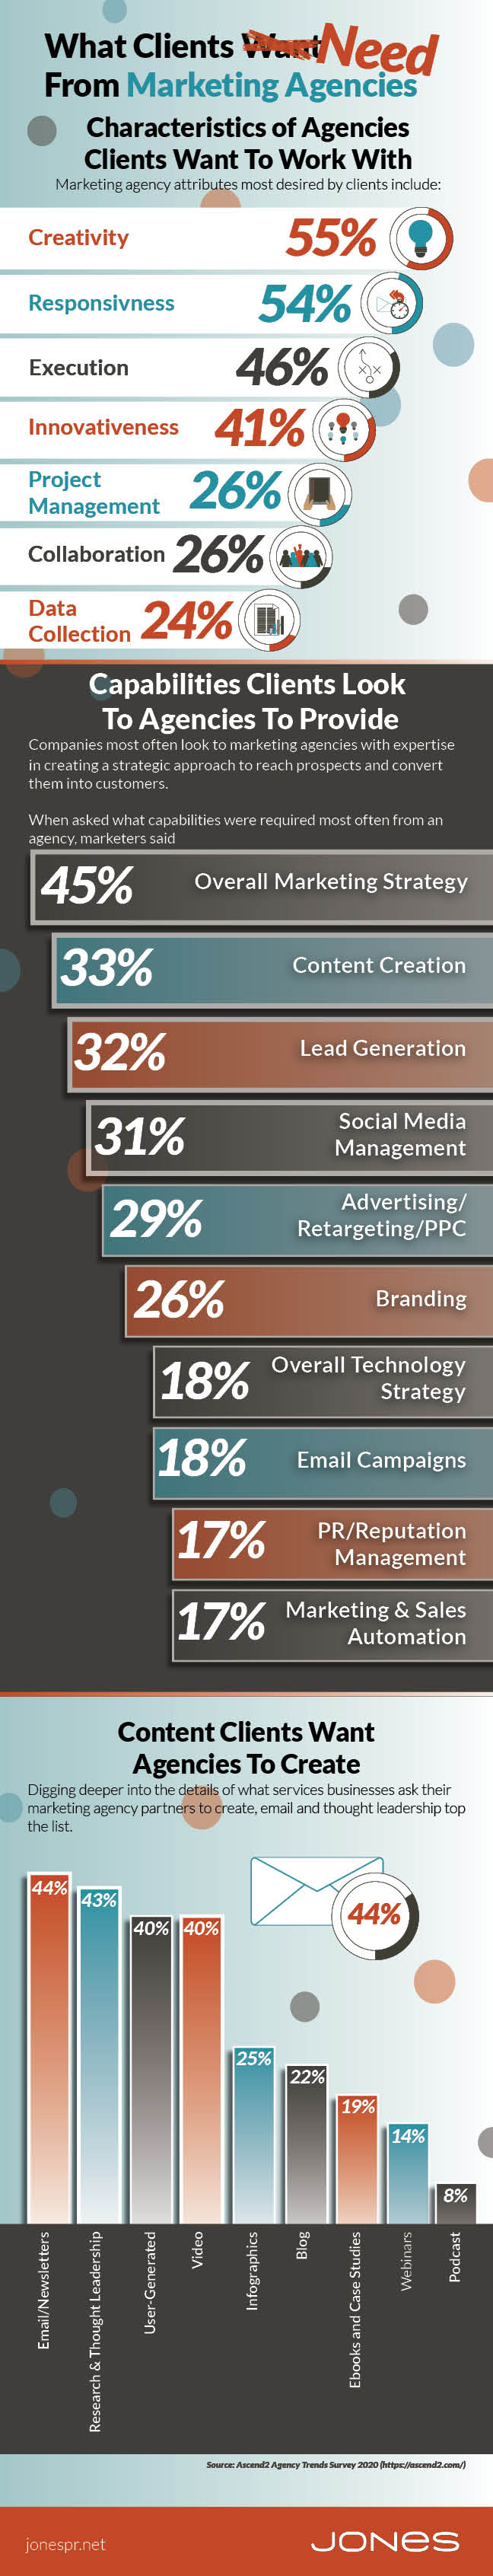 JONES-infographic-what-clients-want-marketing-agencies